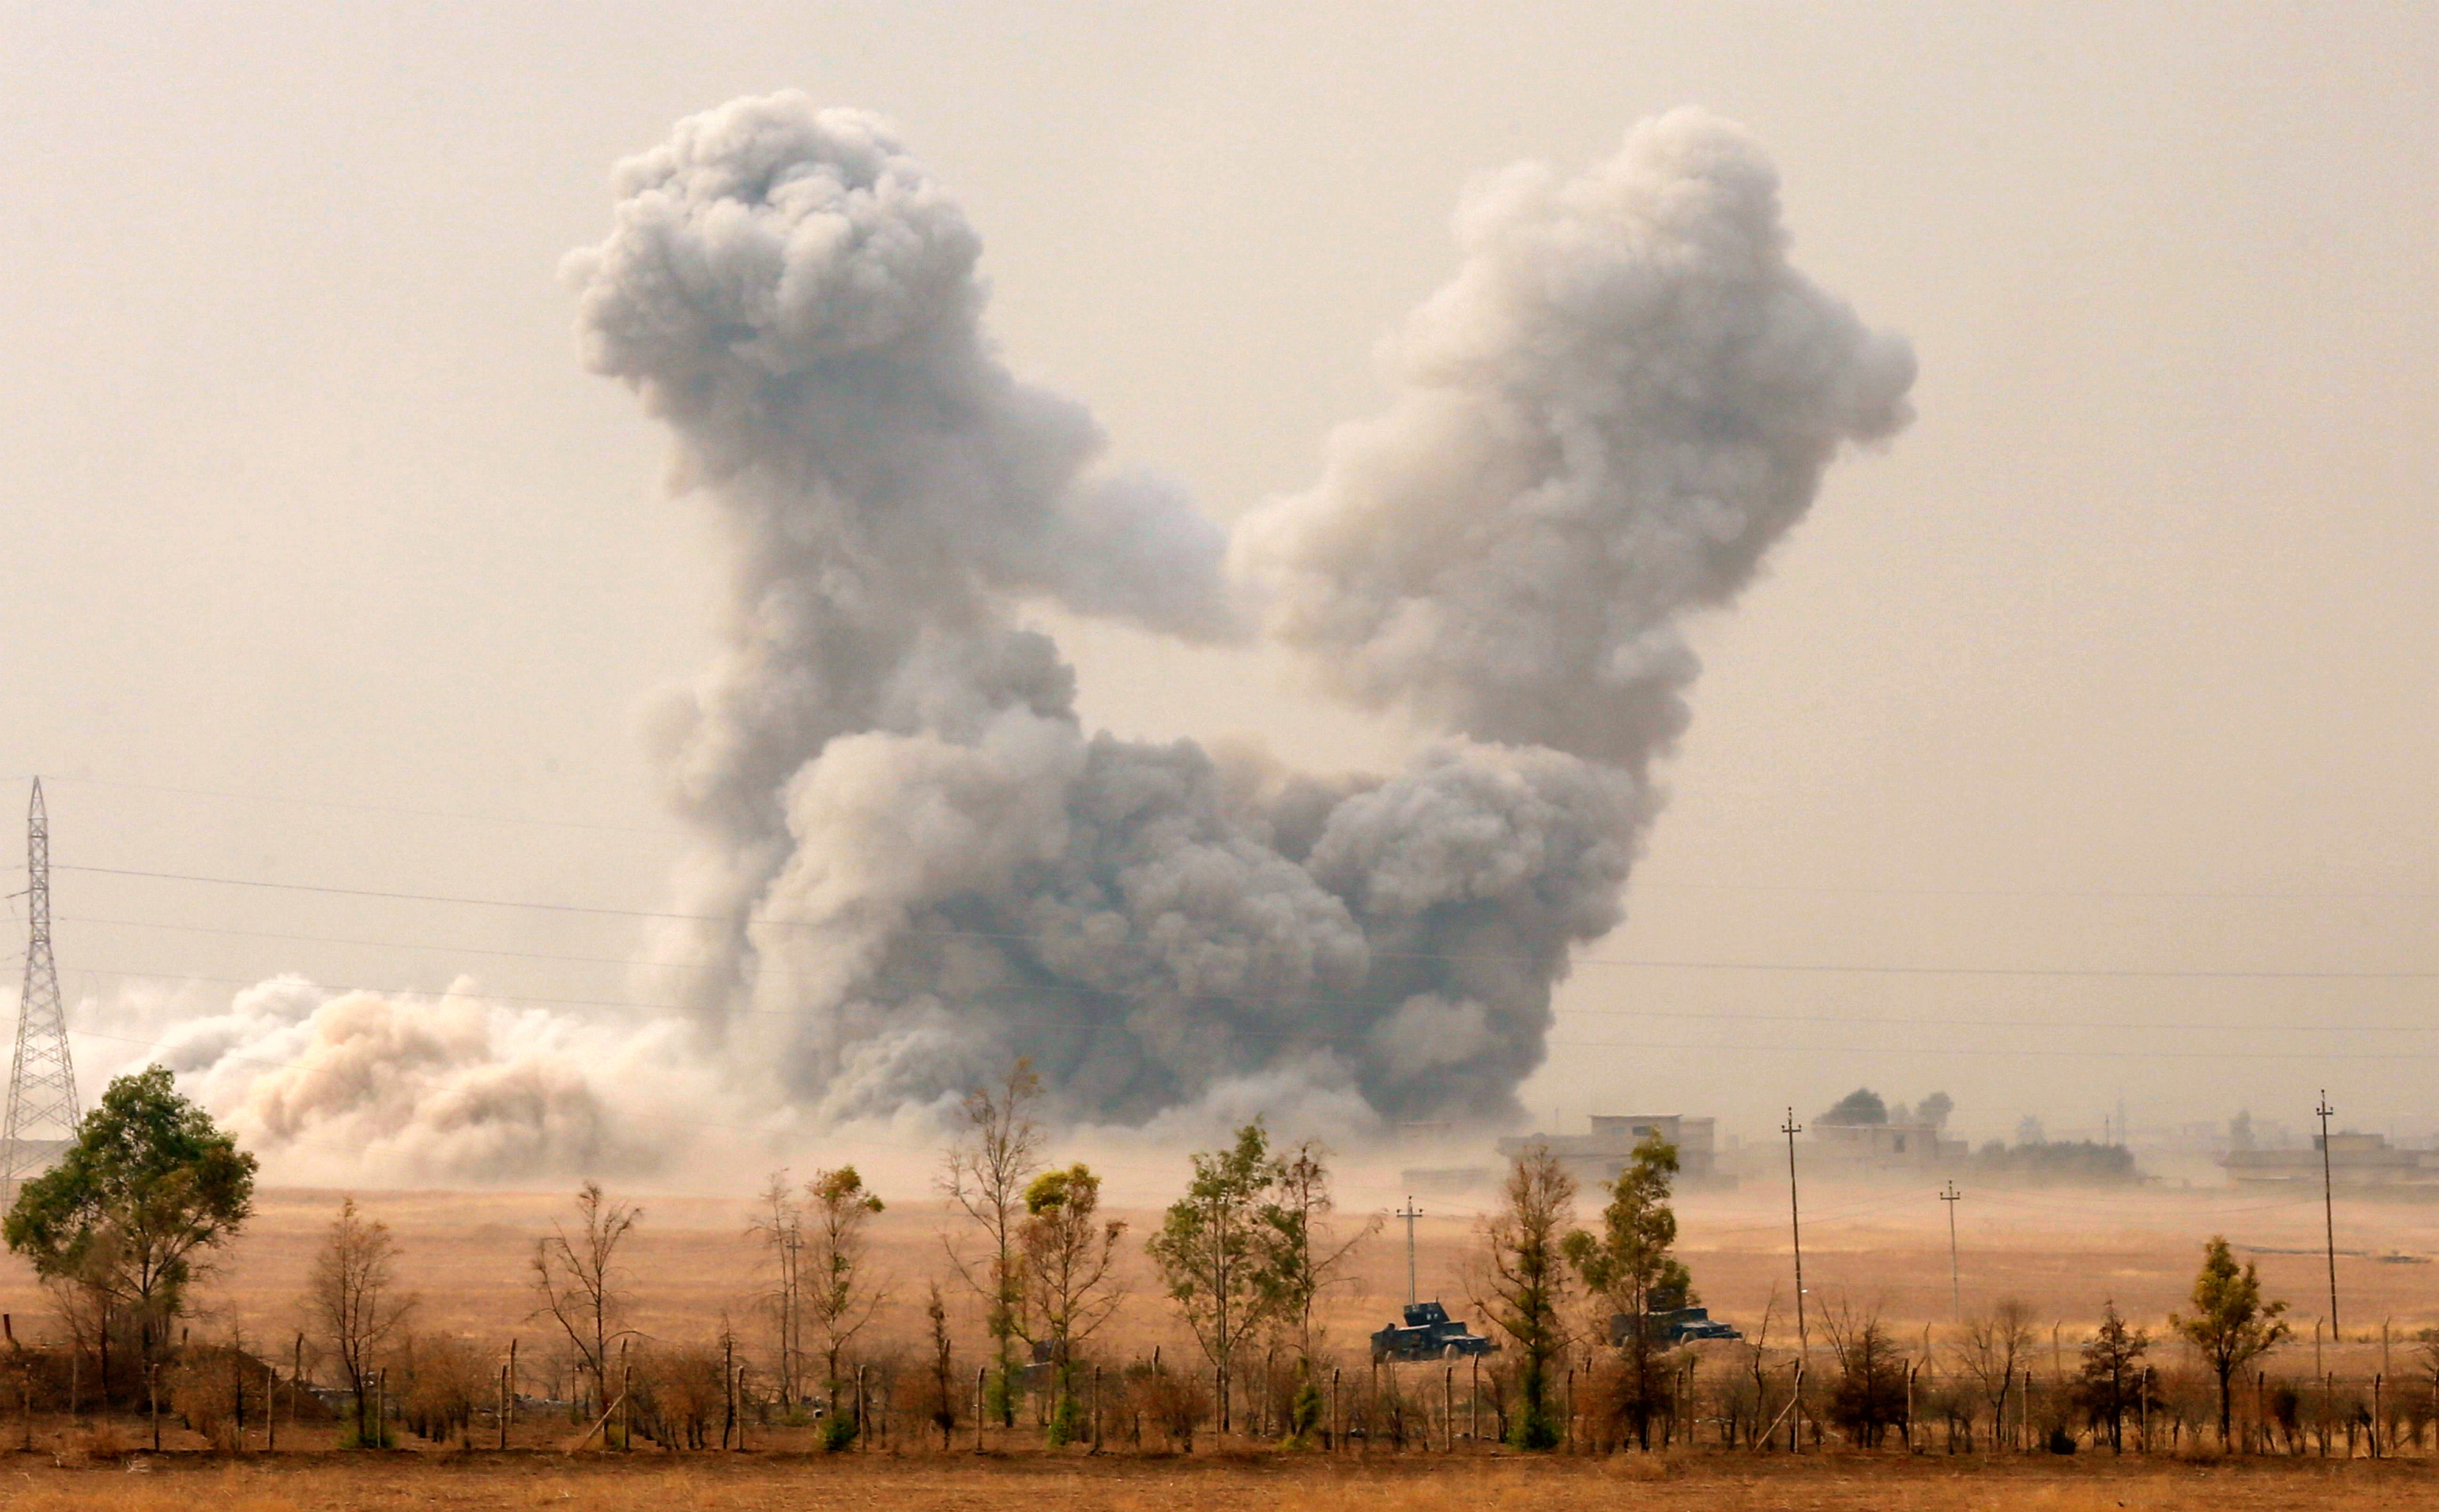 Smoke rises after an U.S. airstrike, while the Iraqi army pushes into Topzawa village during the operation against Islamic State militants near Bashiqa